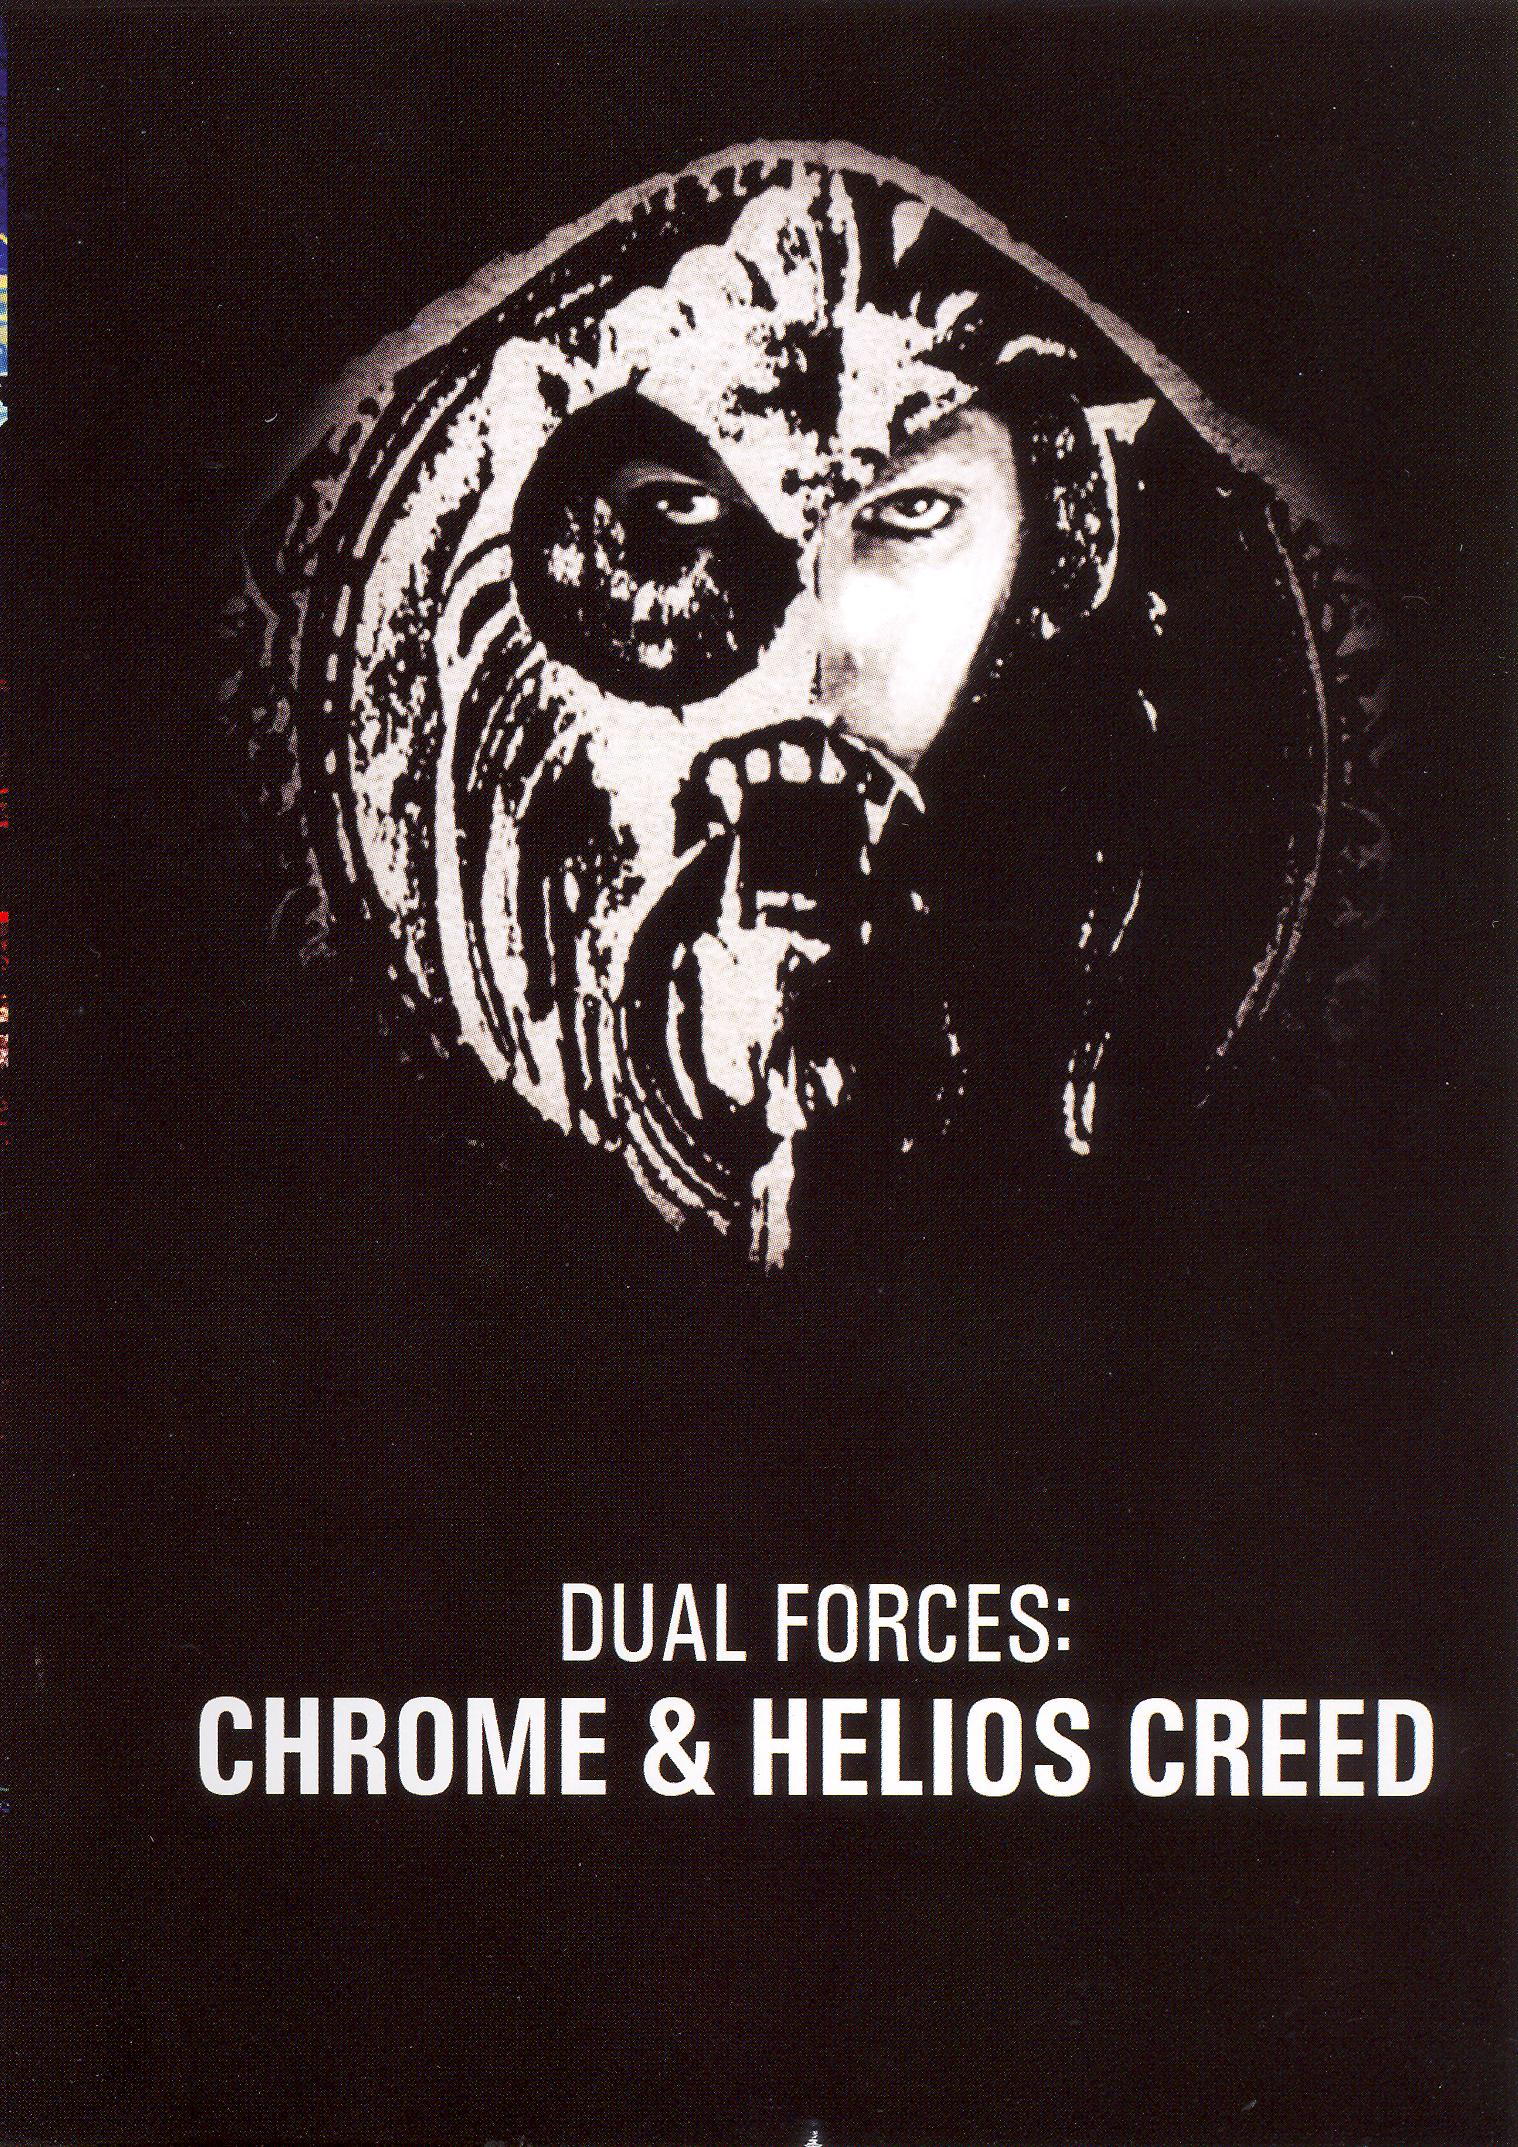 Chrome & Helios Creed: Dual Forces